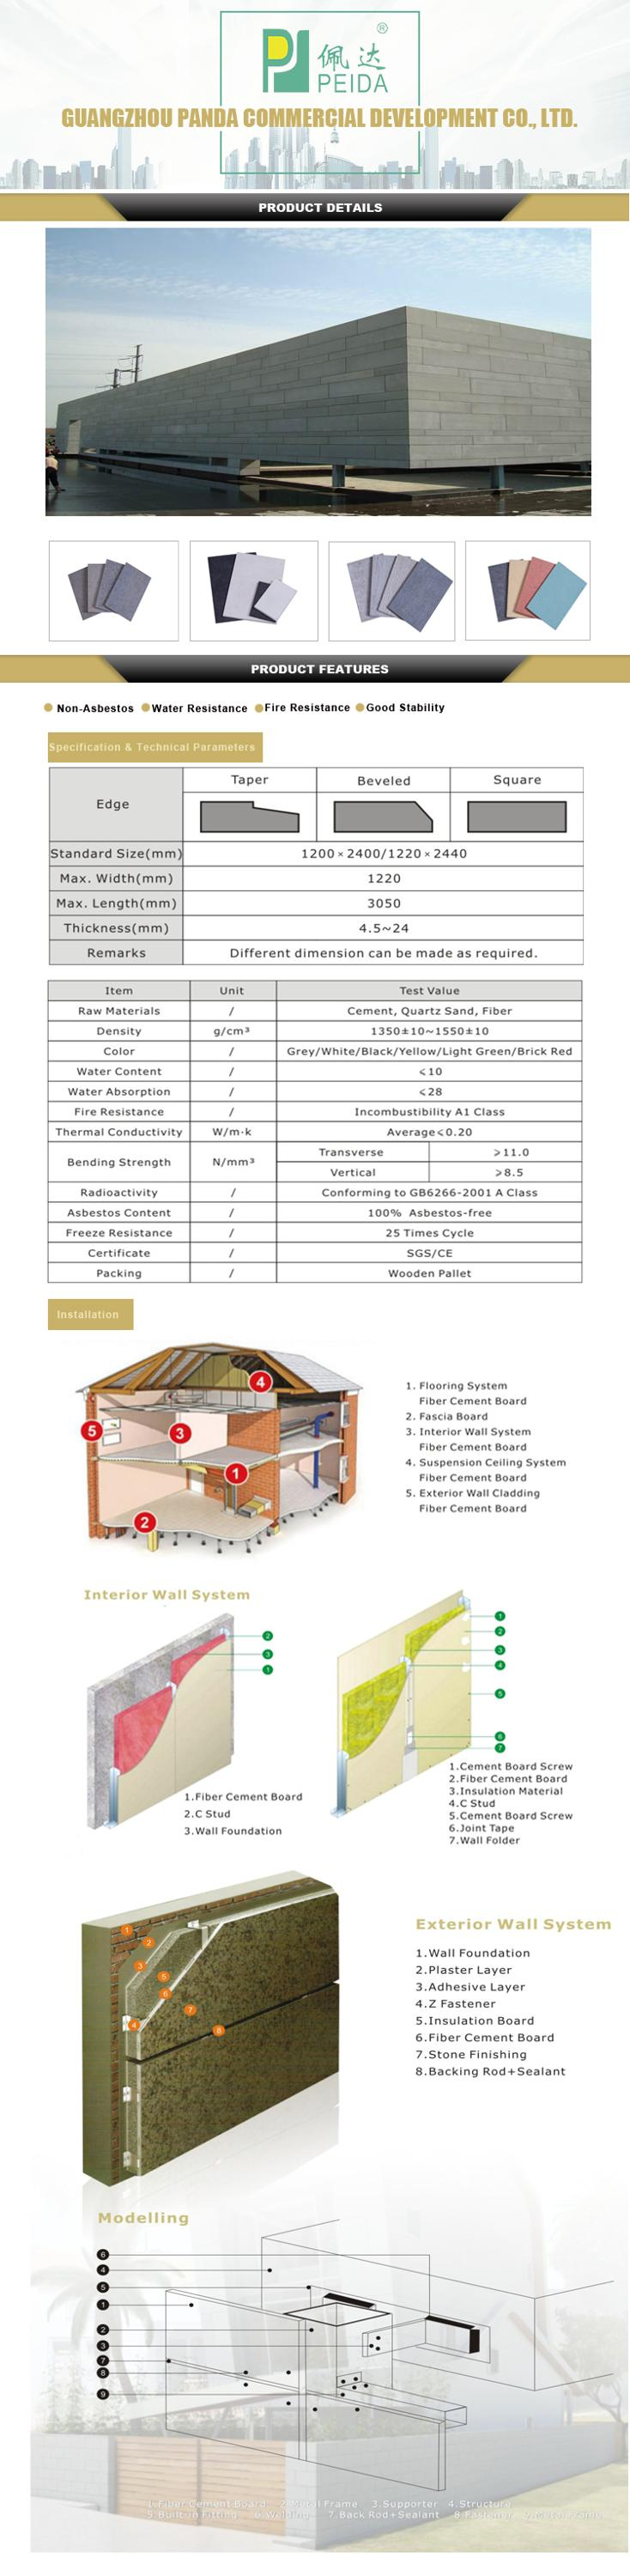 Wood Grain Fiber Cement Board Price Philippines